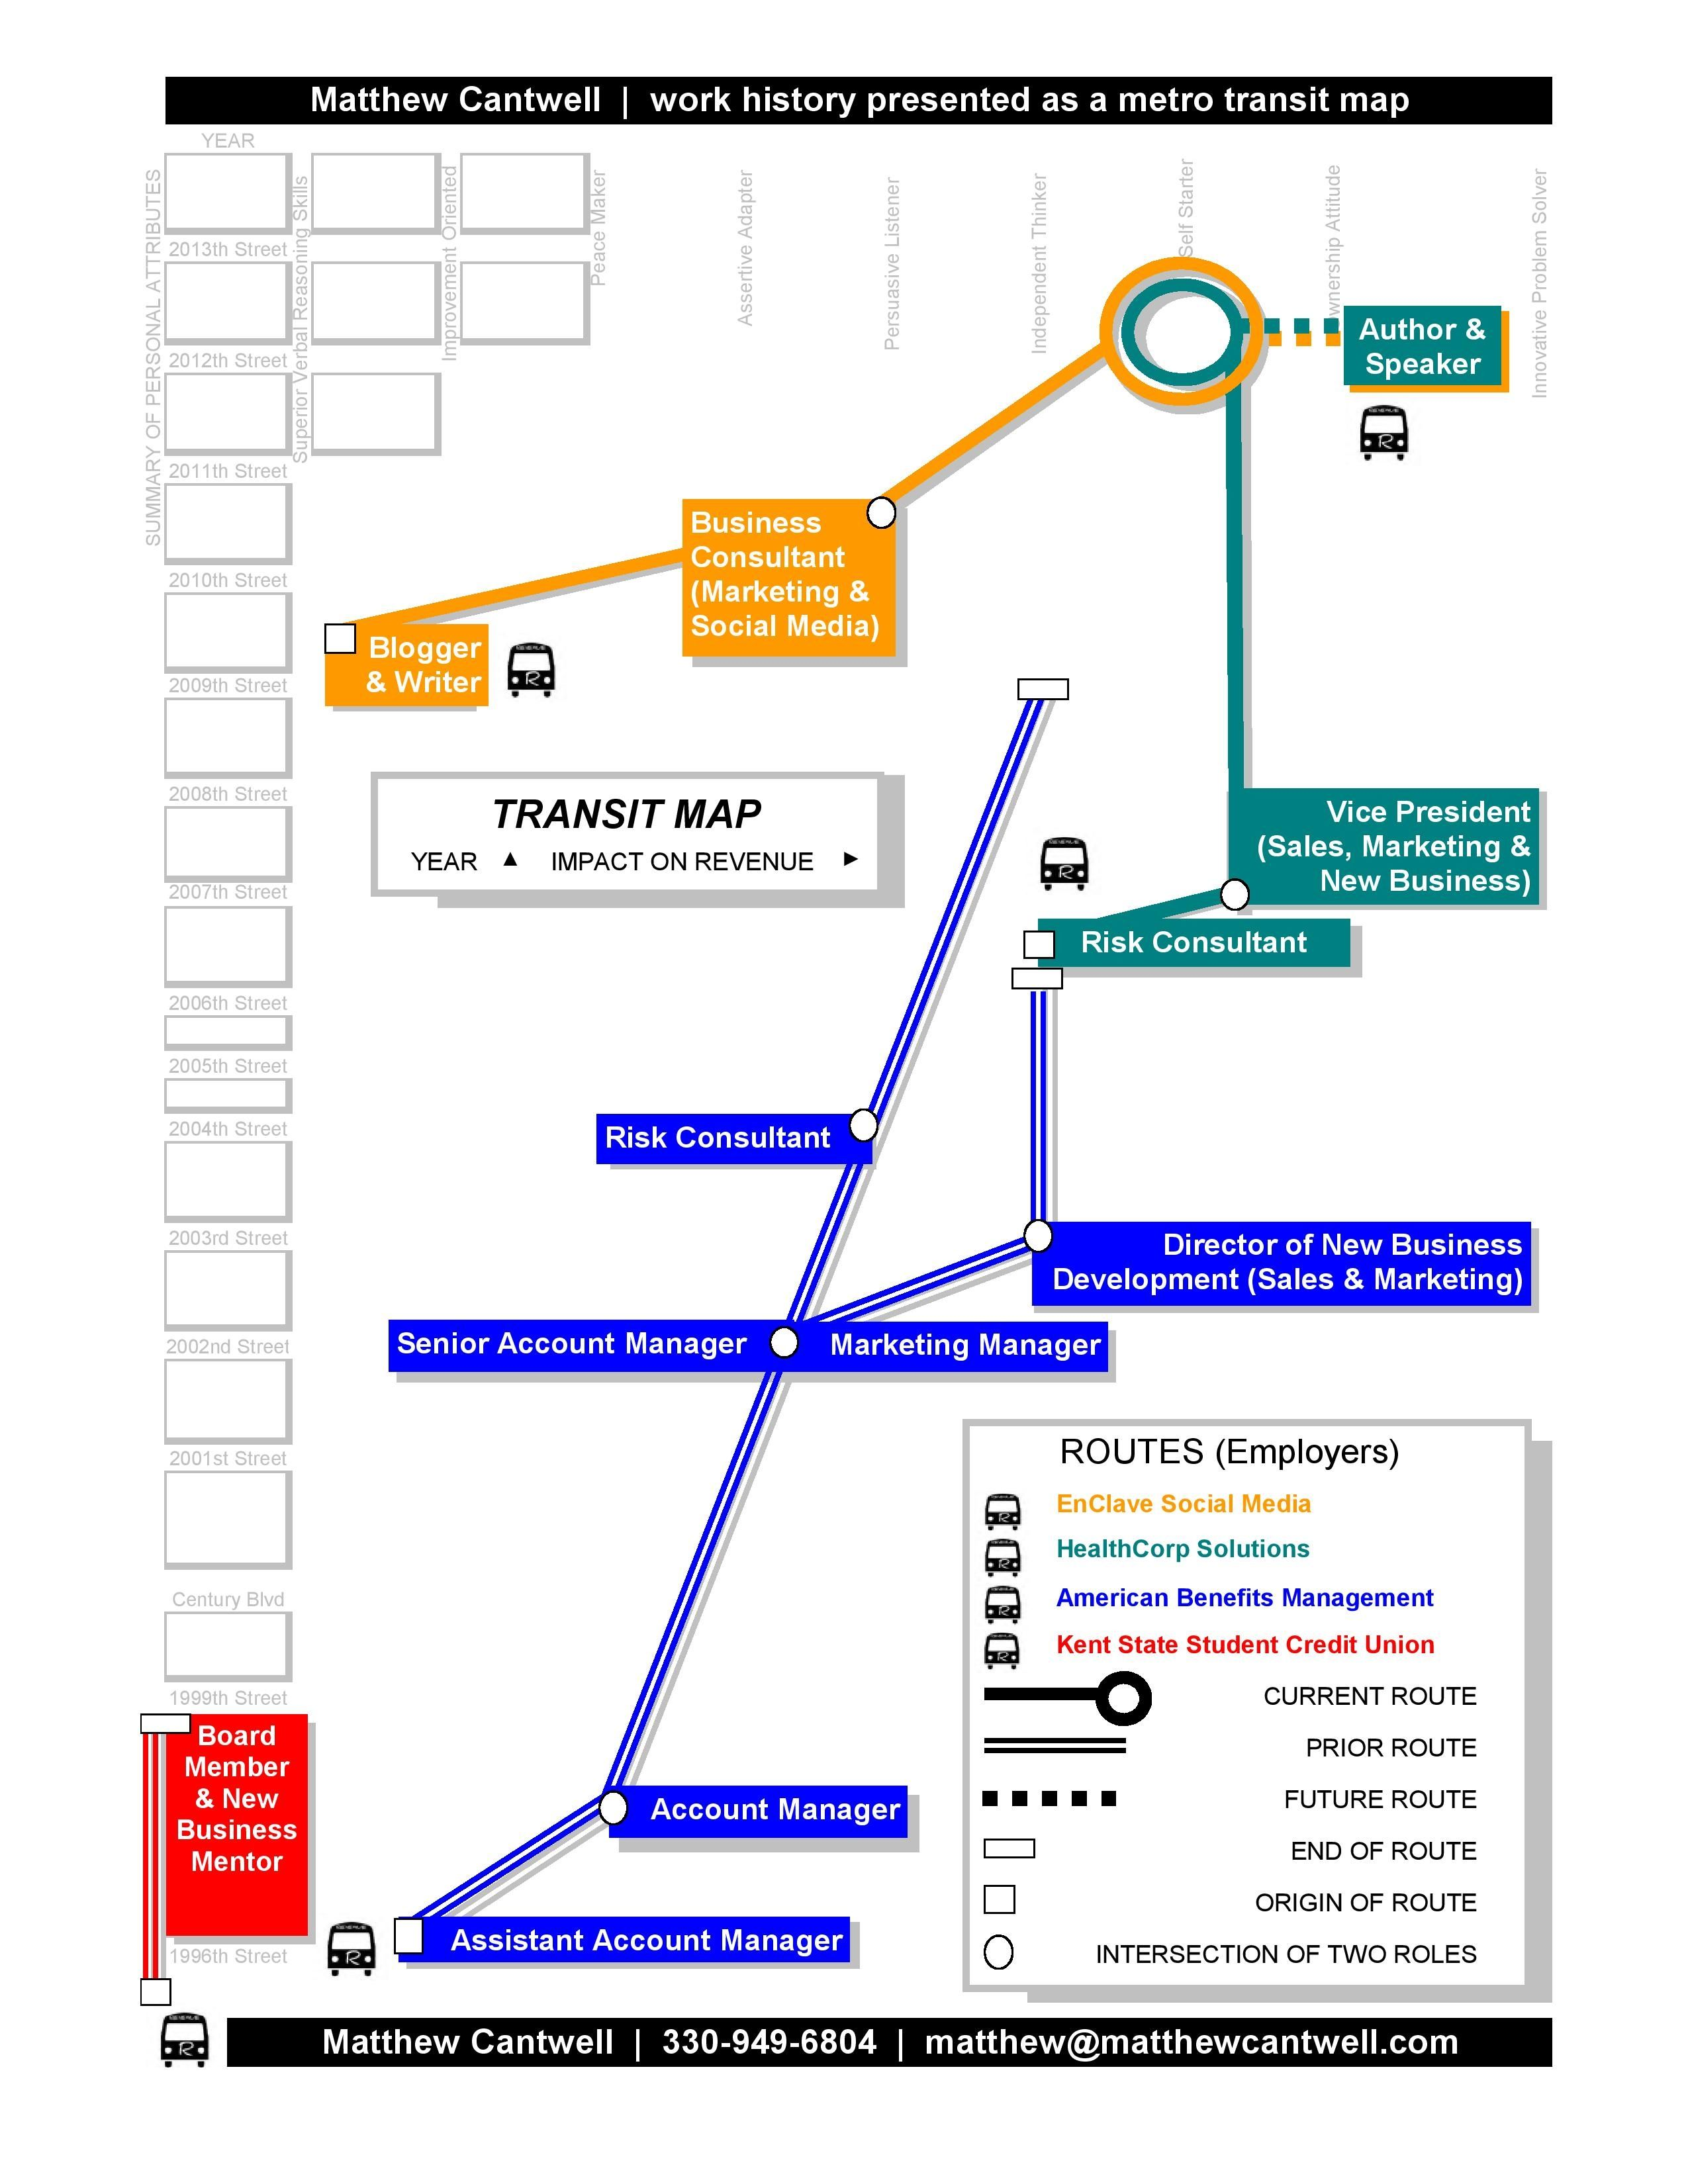 My resume presented as a Metro Transit Map with the